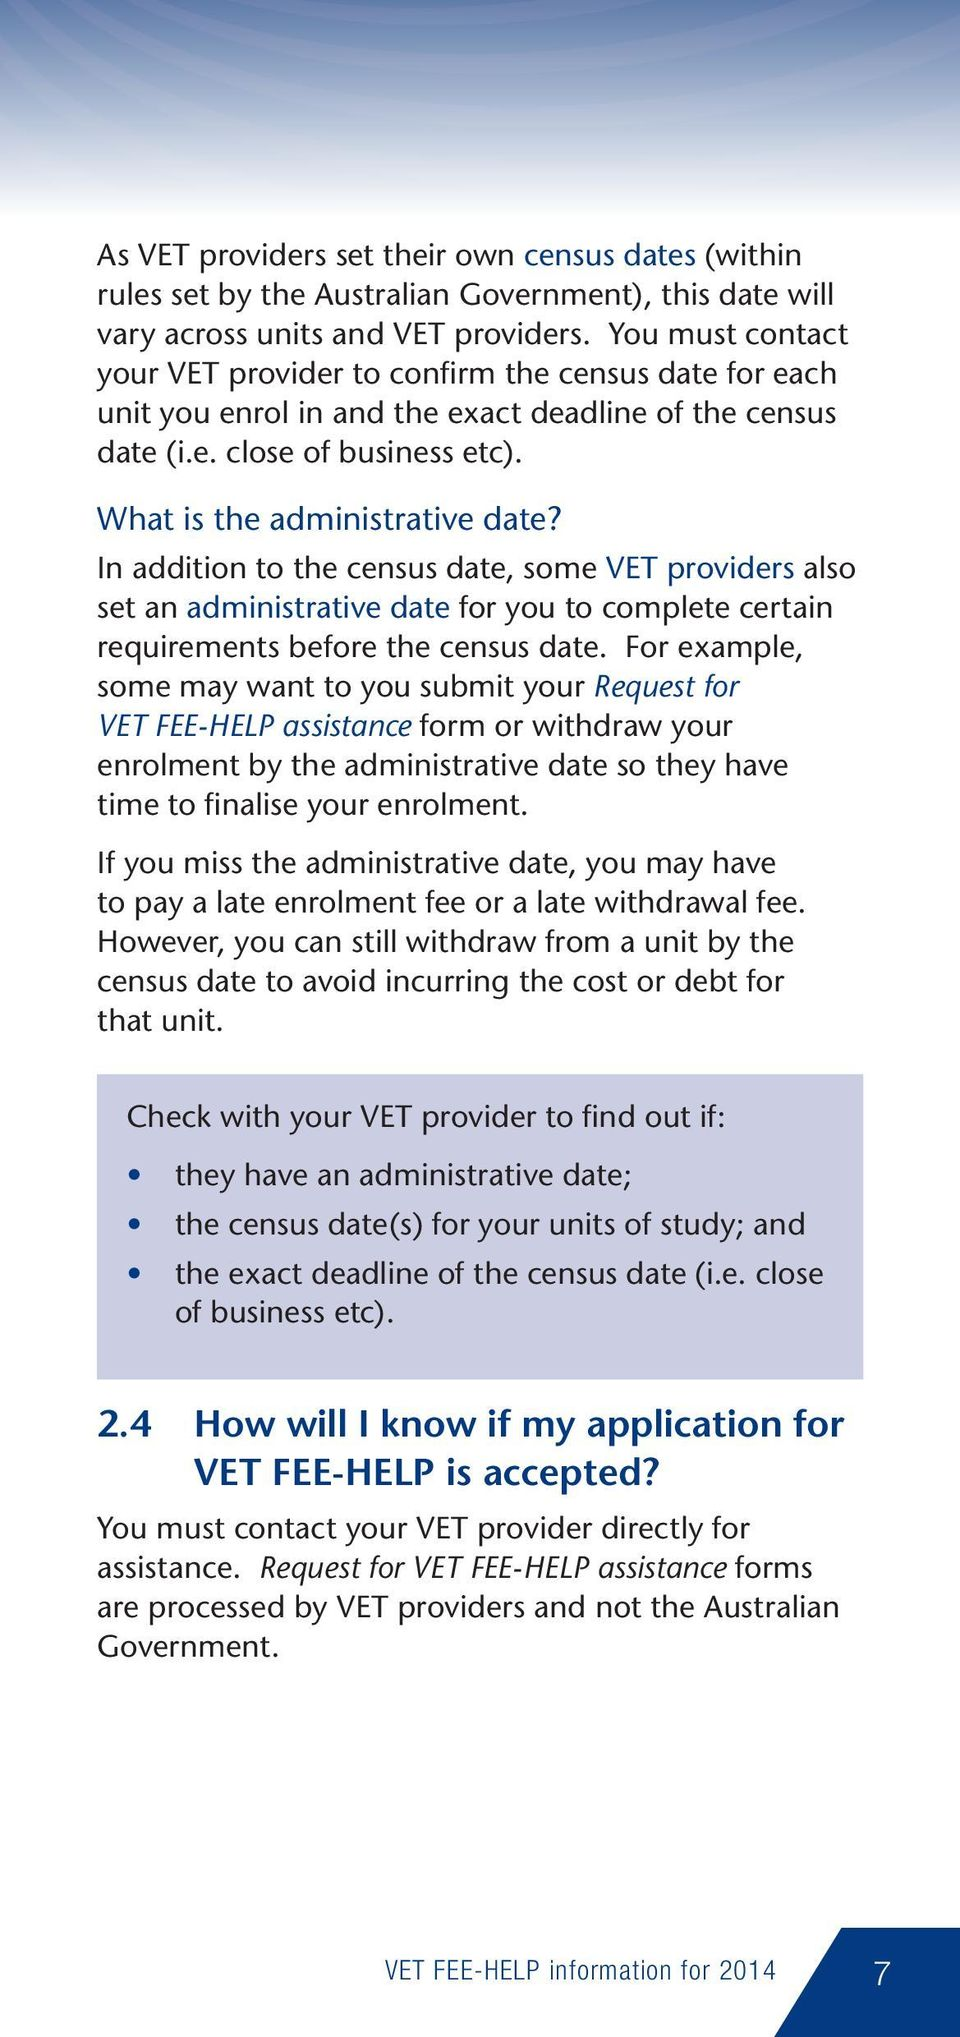 In addition to the census date, some VET providers also set an administrative date for you to complete certain requirements before the census date.